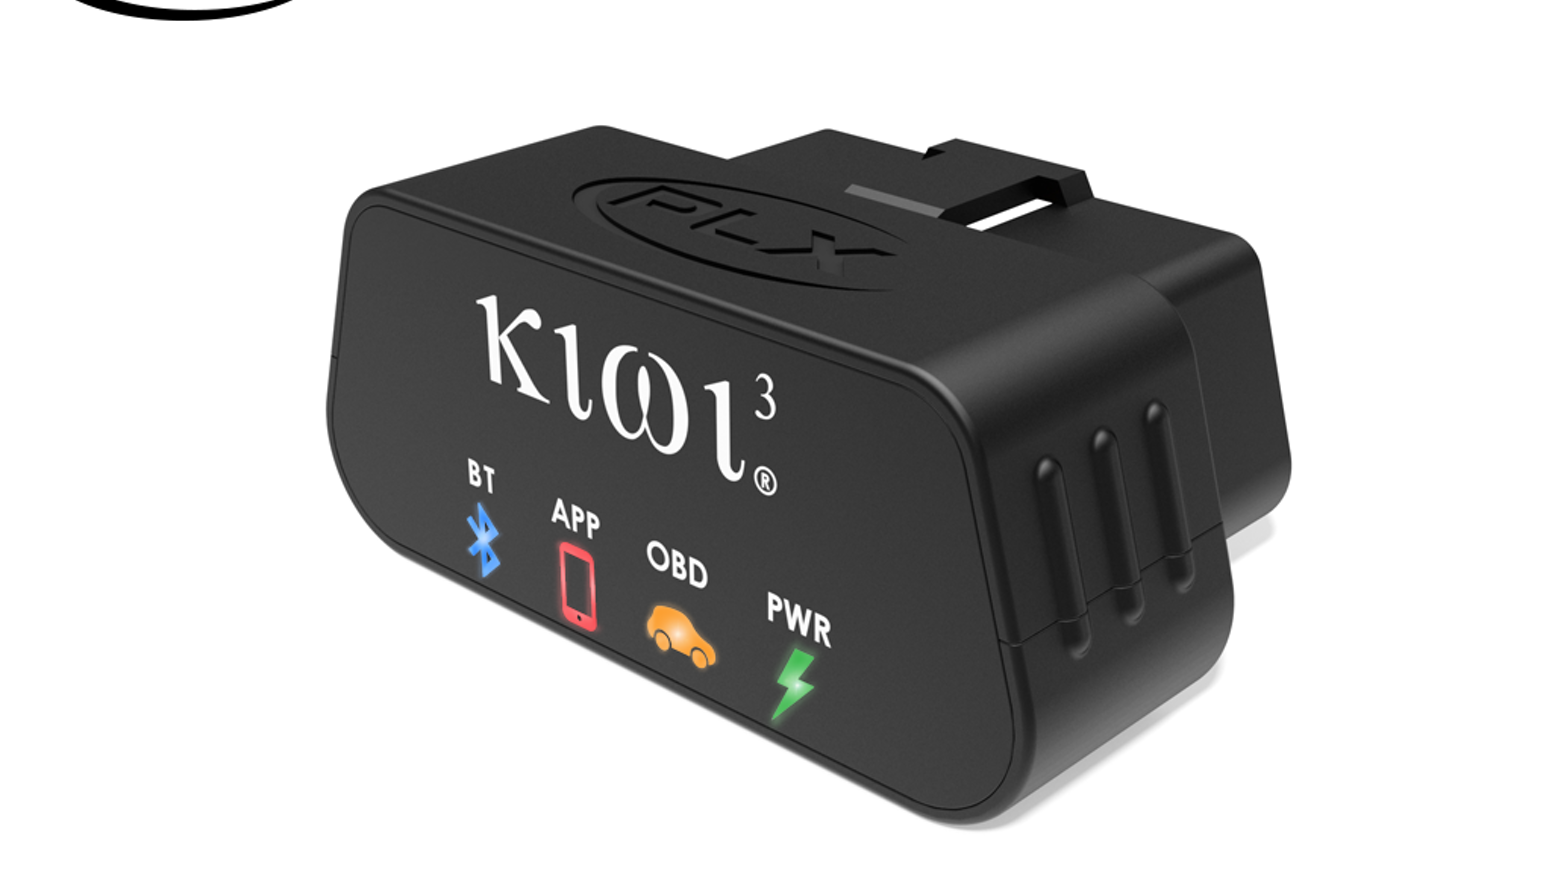 Kiwi 3 Obd Car To Smartphone Interface Reinvented By Plx Devices Techstrong Basic Electronics Project4 Simple Electronic Code Lock Kickstarter